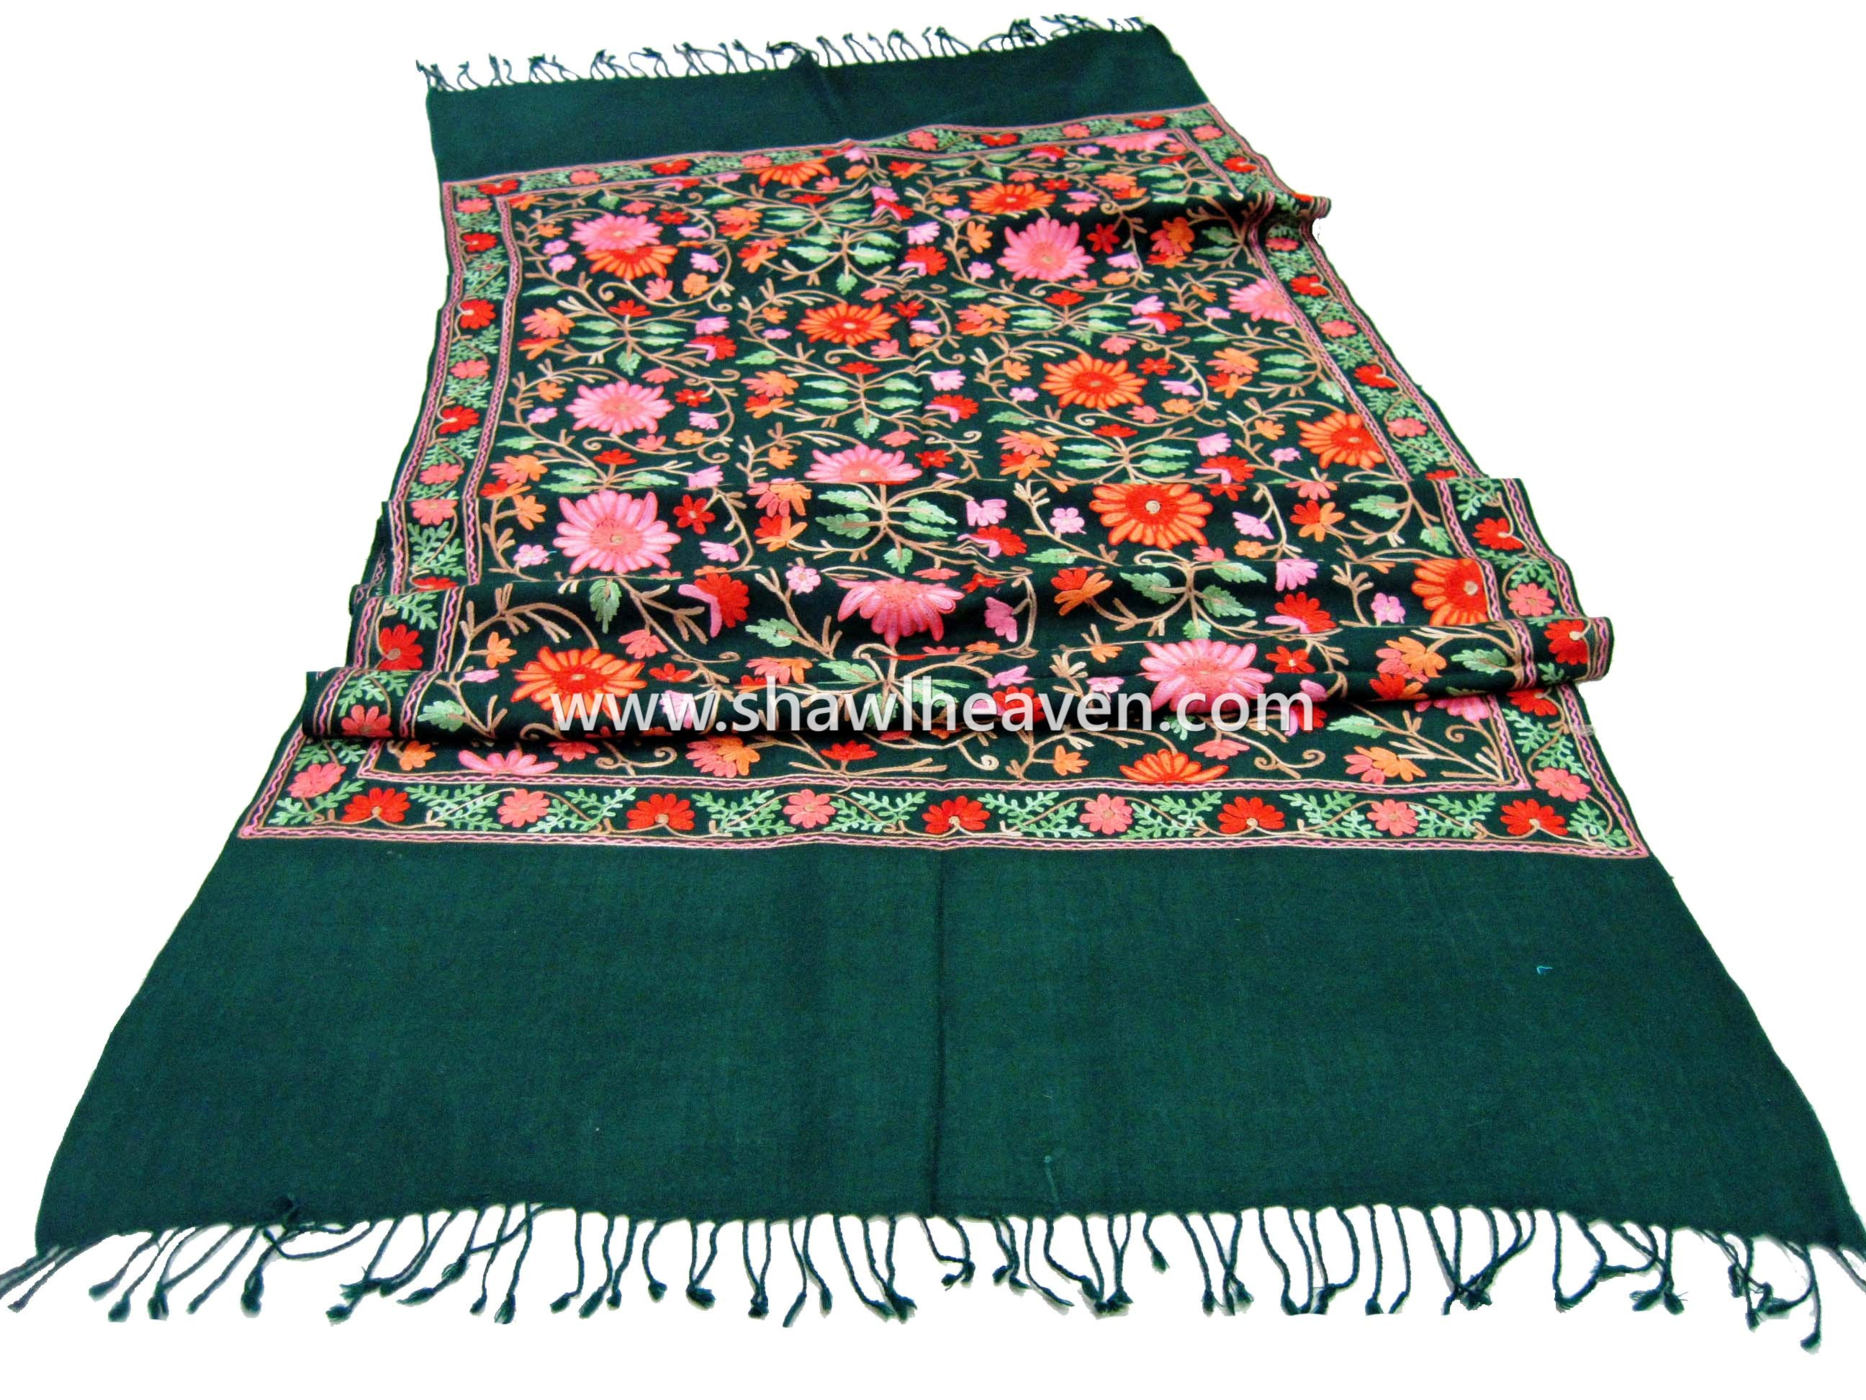 Traditional Kashmiri Wool Shawls And Stoles With Aari Embroidery